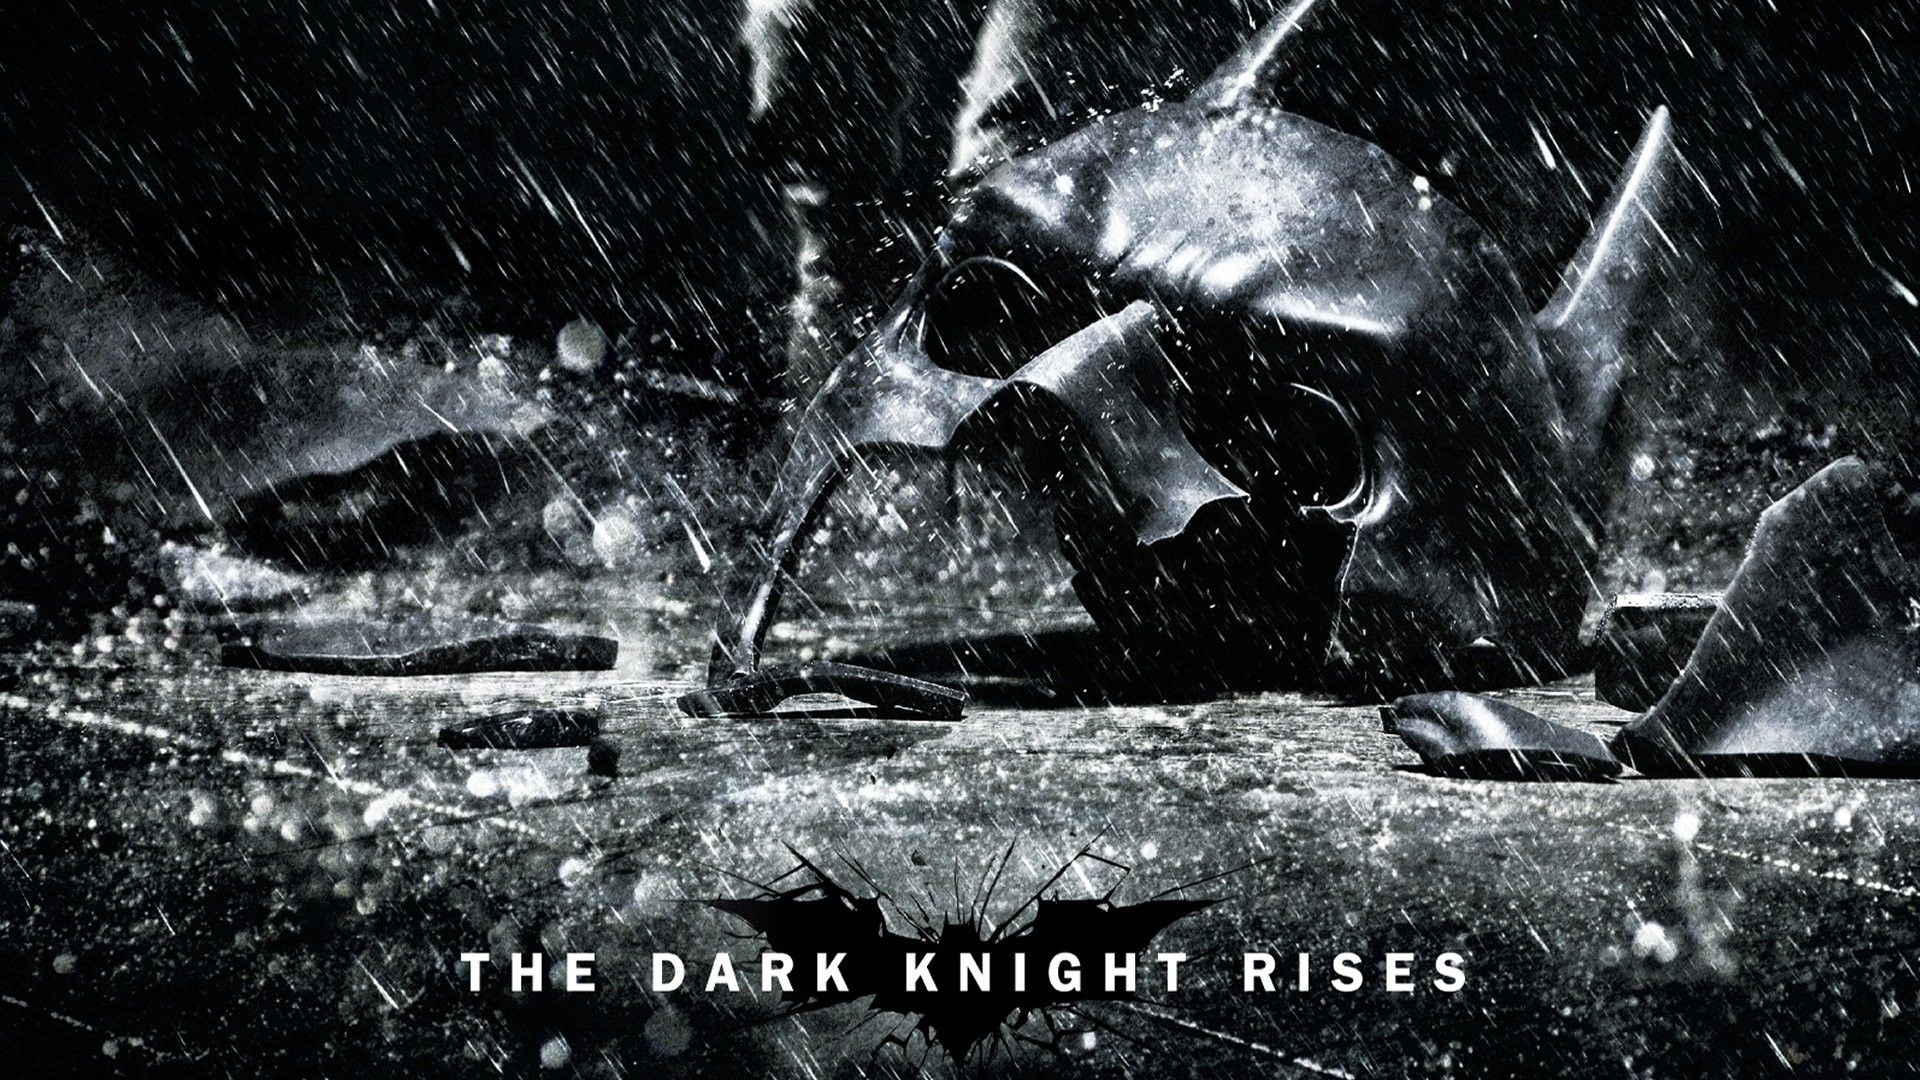 The dark knight rises wallpaper hd 1920x1080 1920x1080 hd wallpaper background id332896 1920x1080 movie the dark knight rises voltagebd Image collections